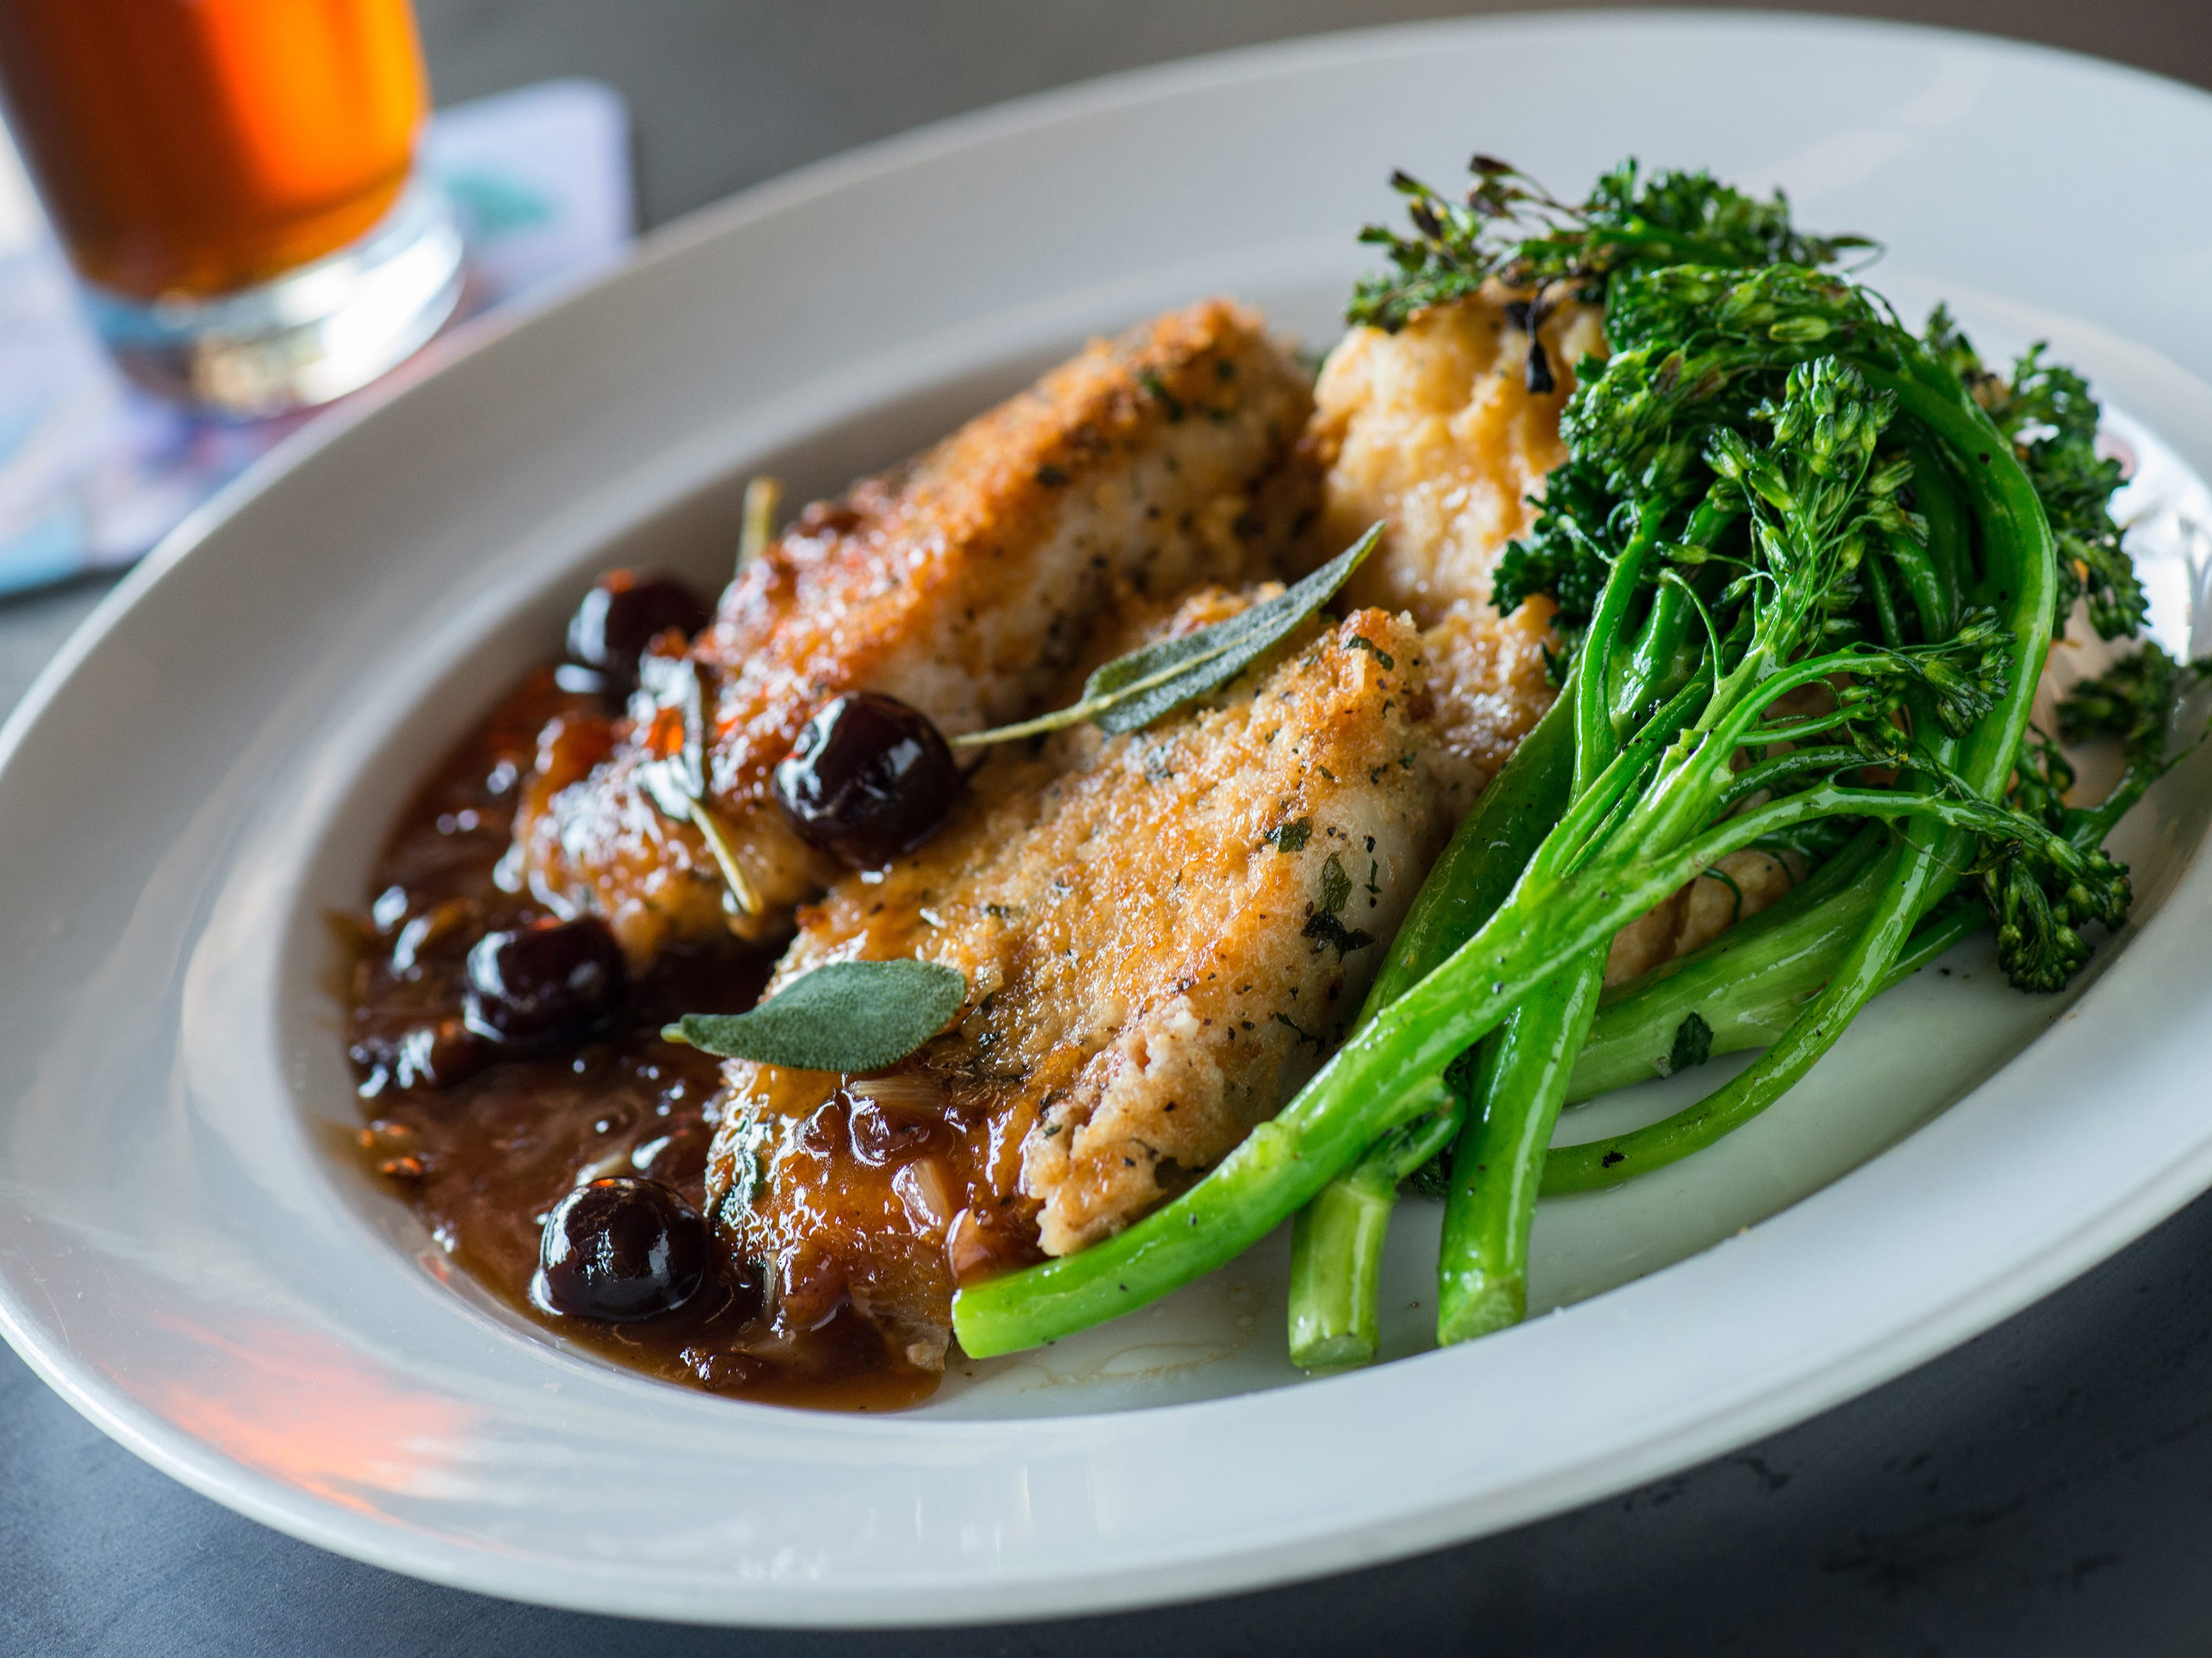 Yard House's Parmesan Crusted Pork Loin features bourbon-sage-cherry-shallot sauce, broccolini and mashed sweet potatoes.